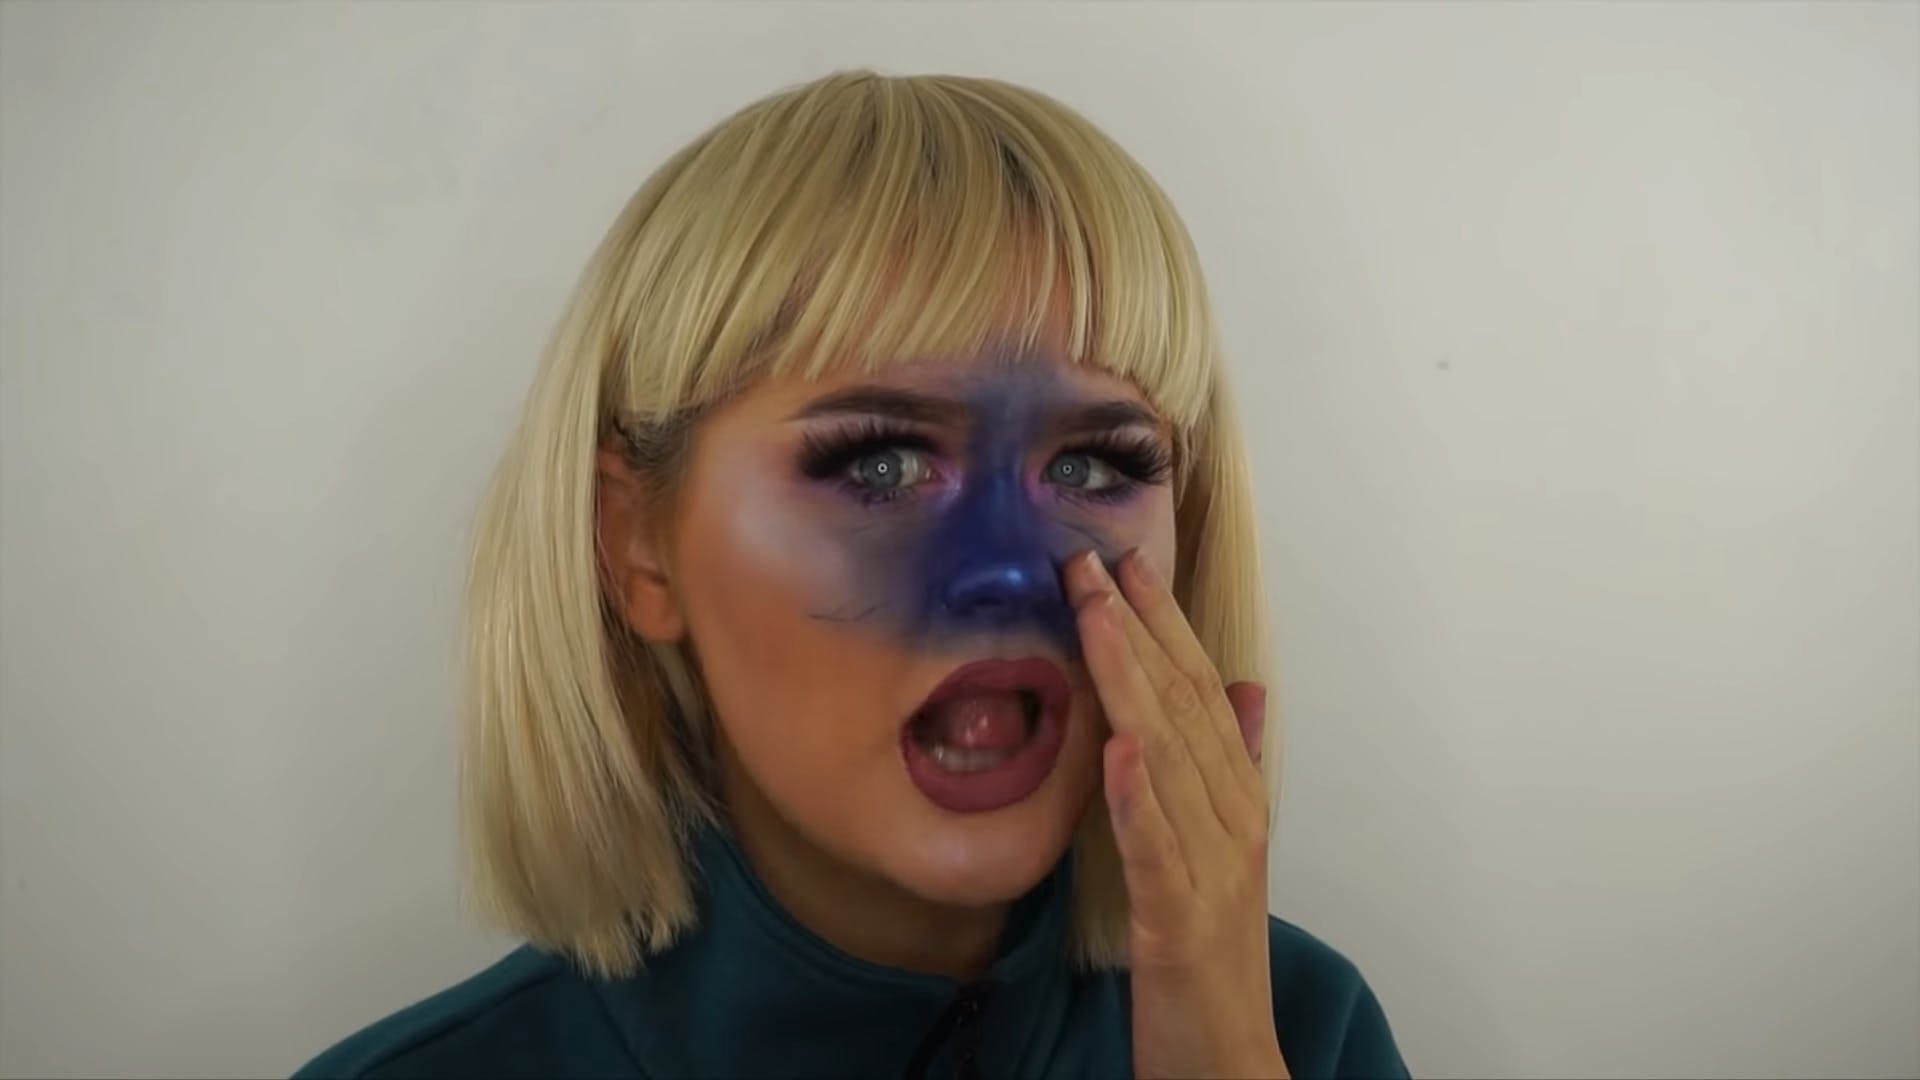 Violet Beauregarde Halloween 2018 Makeup Is Going Viral On Instagram Seriously No One Saw It Coming